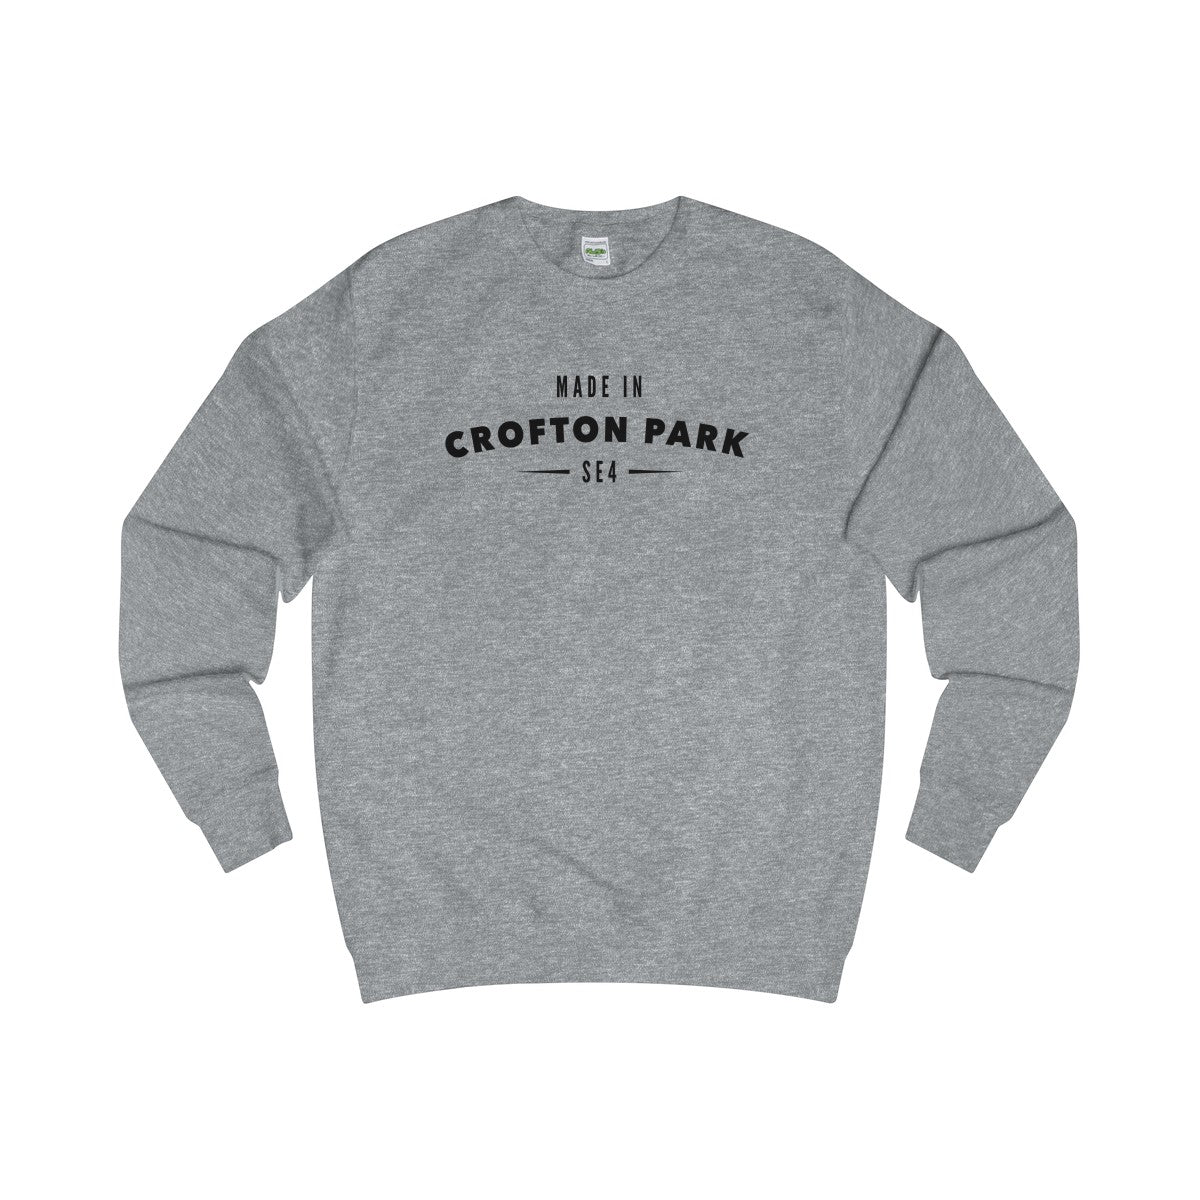 Made In Crofton Park Sweater